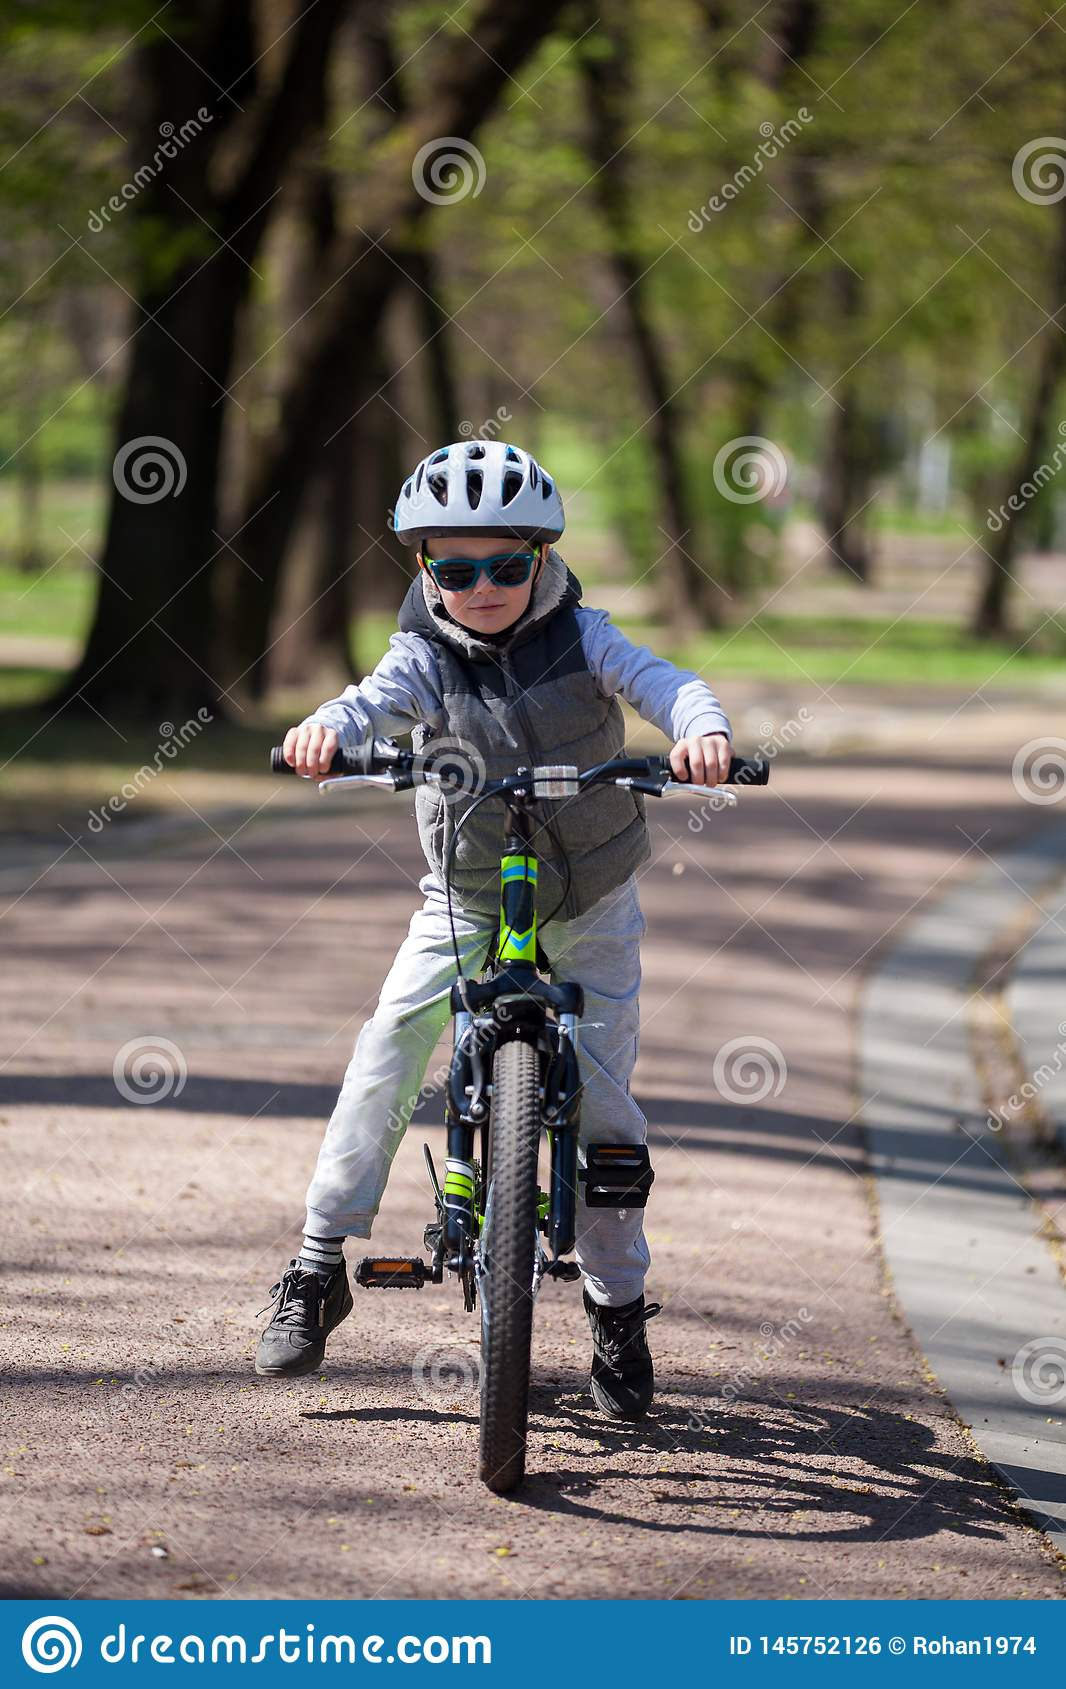 Little boy learns to ride a bike in the park. Cute boy in sunglasses rides a bike. Happy smiling child in helmet riding a cycling